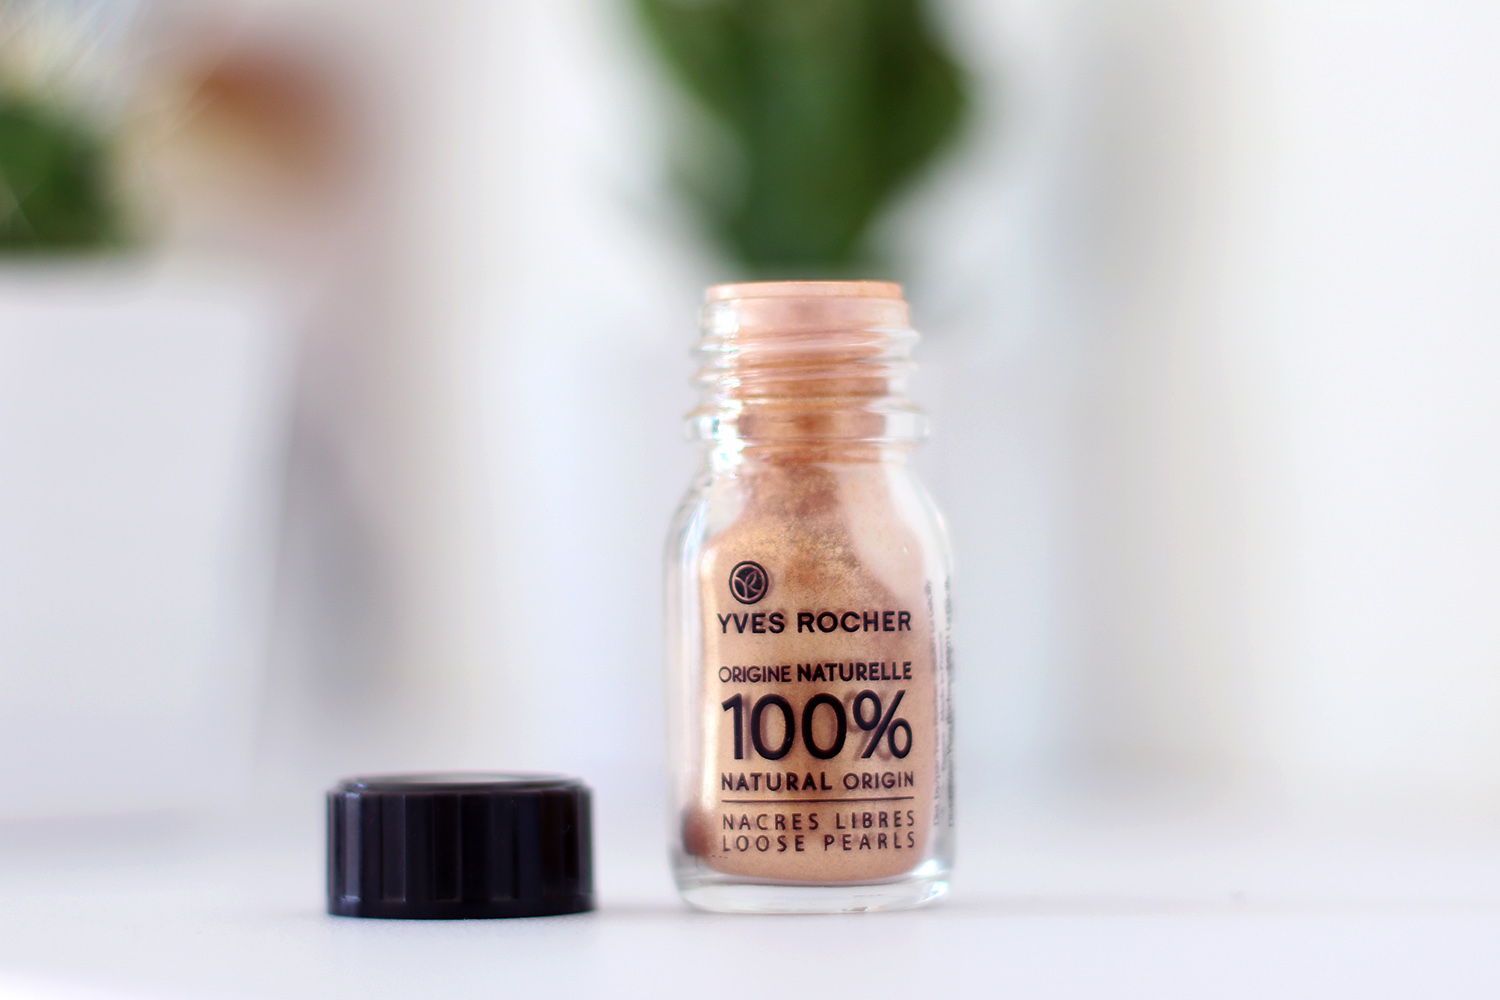 Yves Rocher Loose Pearls, Test, Review, Swatch, Frist Impression Pflanzenkosmetik, High End, Drogerie, Neuheiten, Trends, Frühlingsmakeup, Makeuptutorial, Makeuptipps, Beautytipps, Alltagsmakeup, Tagesmakeup, Beauty Blog, Berlin, Monday's Makeup, Beauty Tipps, Makeup für helle Haut, rote Haare, Influencer, Youtuber, Advance Your Style, advanceyourstyle